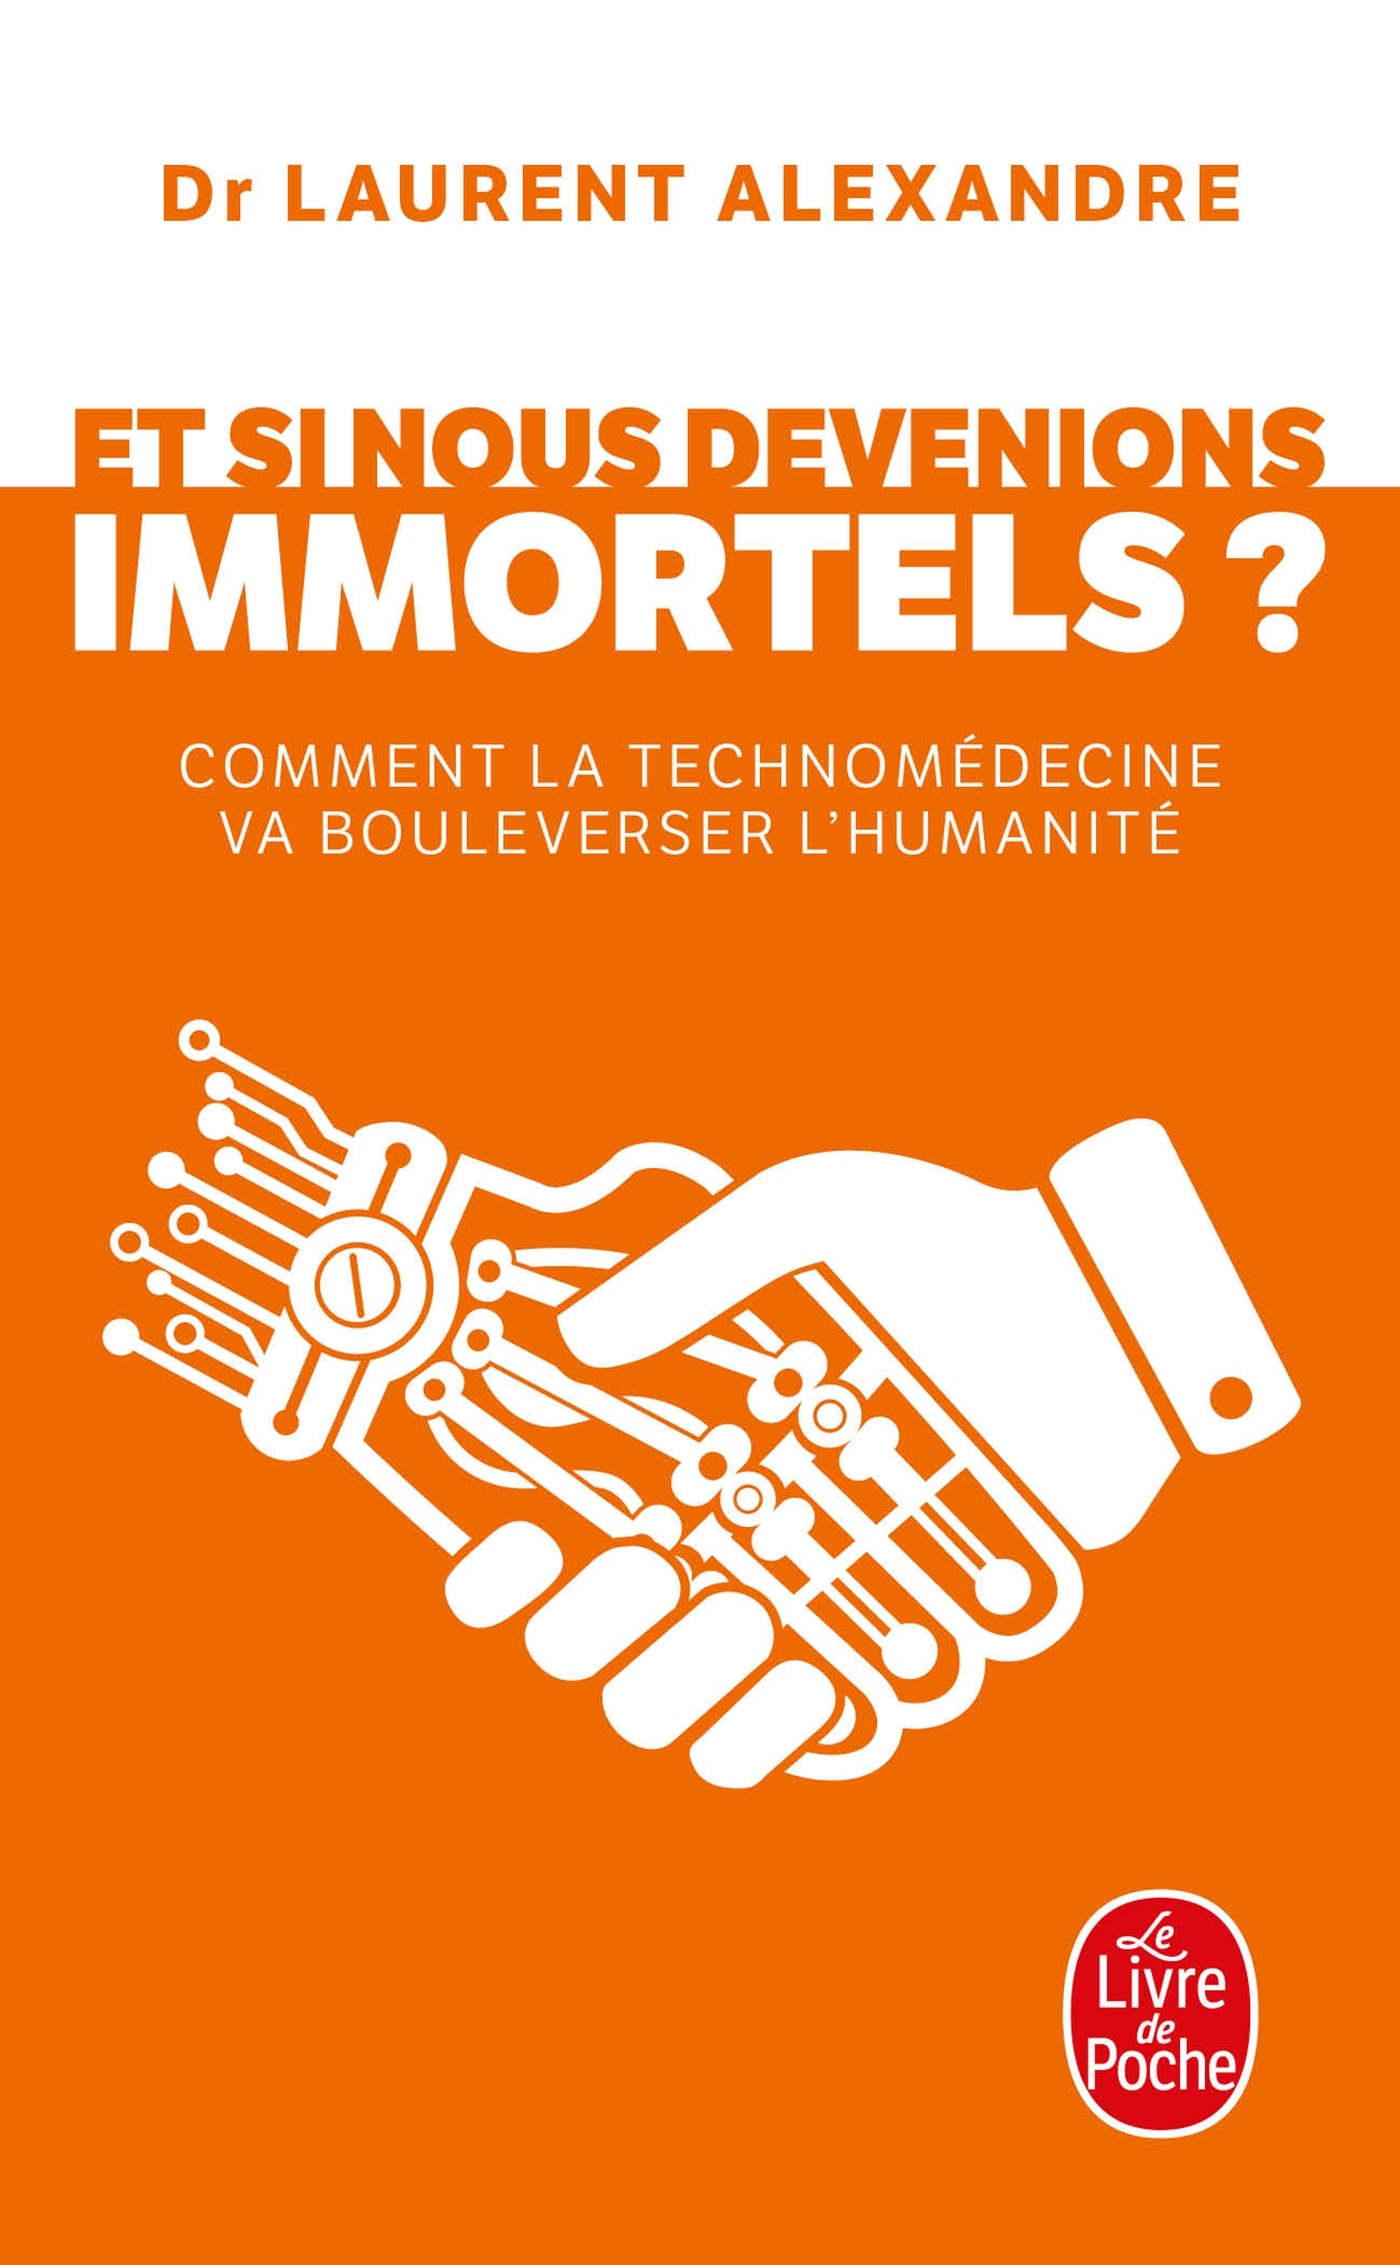 ET SI NOUS DEVENIONS IMMORTELS ? - COMMENT LA TECHNOMEDECINE VA BOULEVERSER L HUMANITE